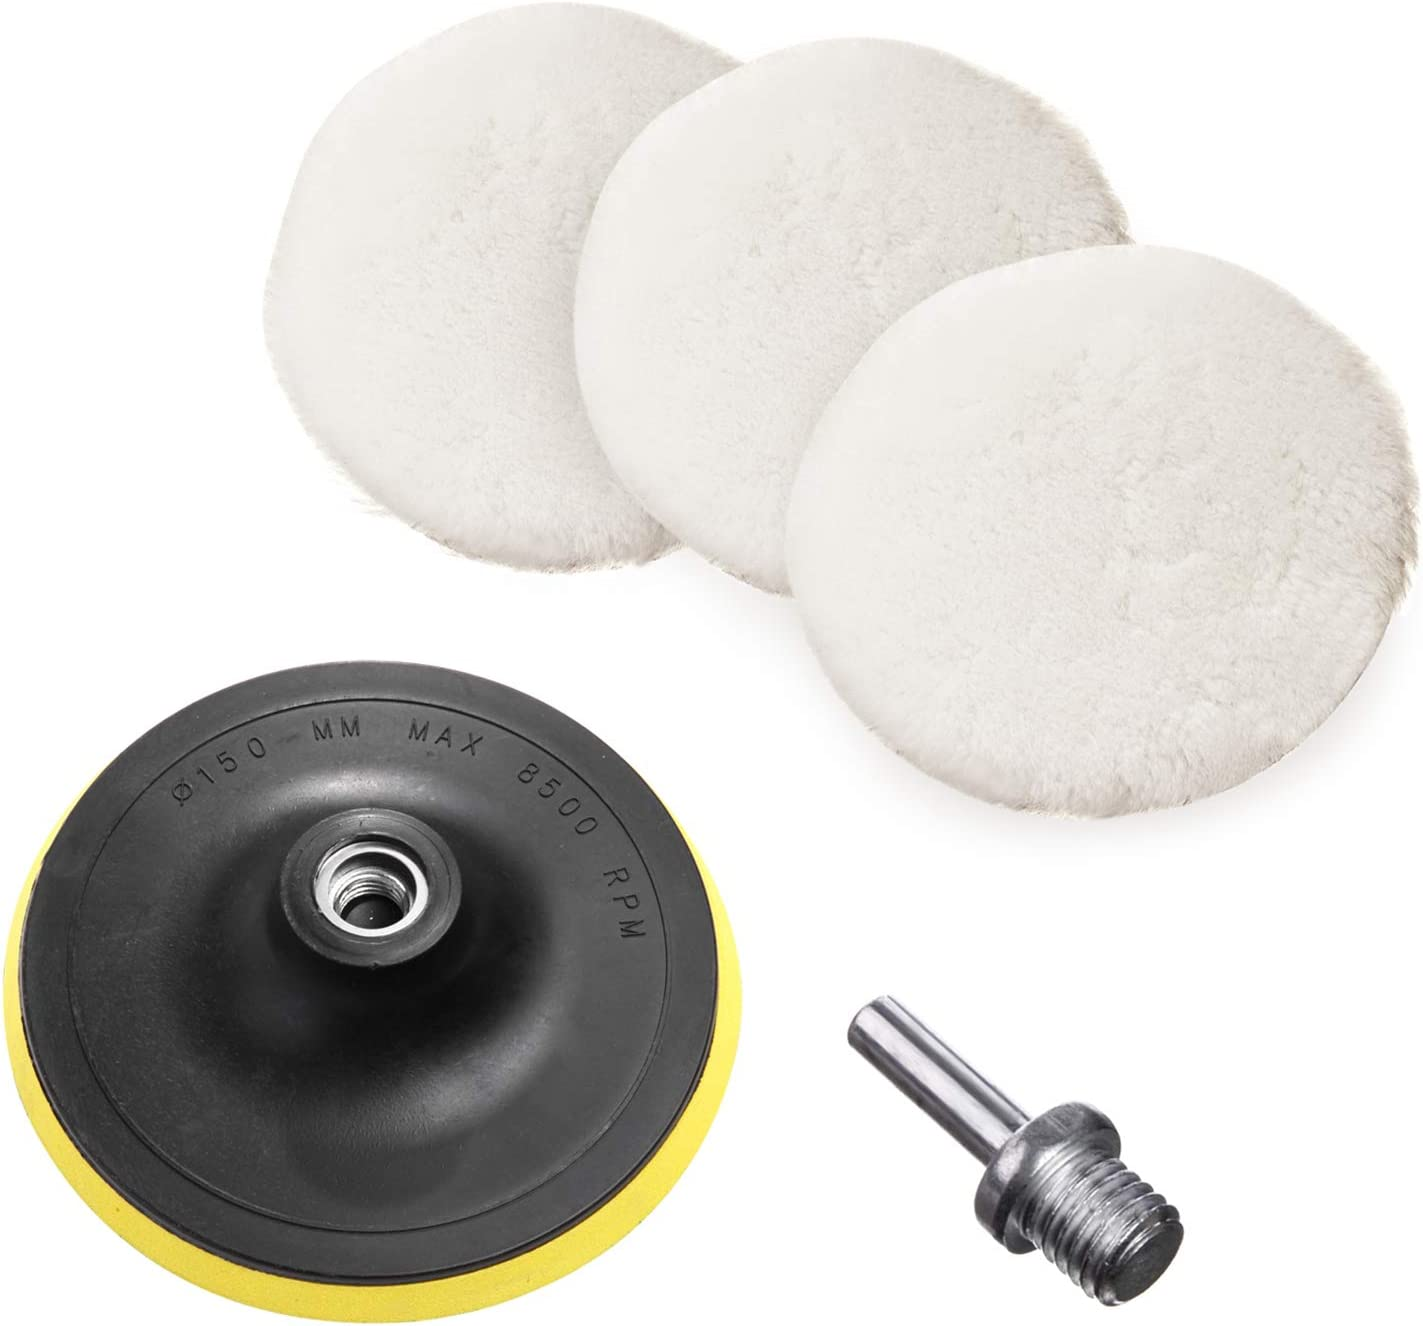 WANYUE Polishing Pads 6C inch Kit, Wool Buffing Pads Back Plate with M14 Drill for Car Polishing Waxing 5 Pcs